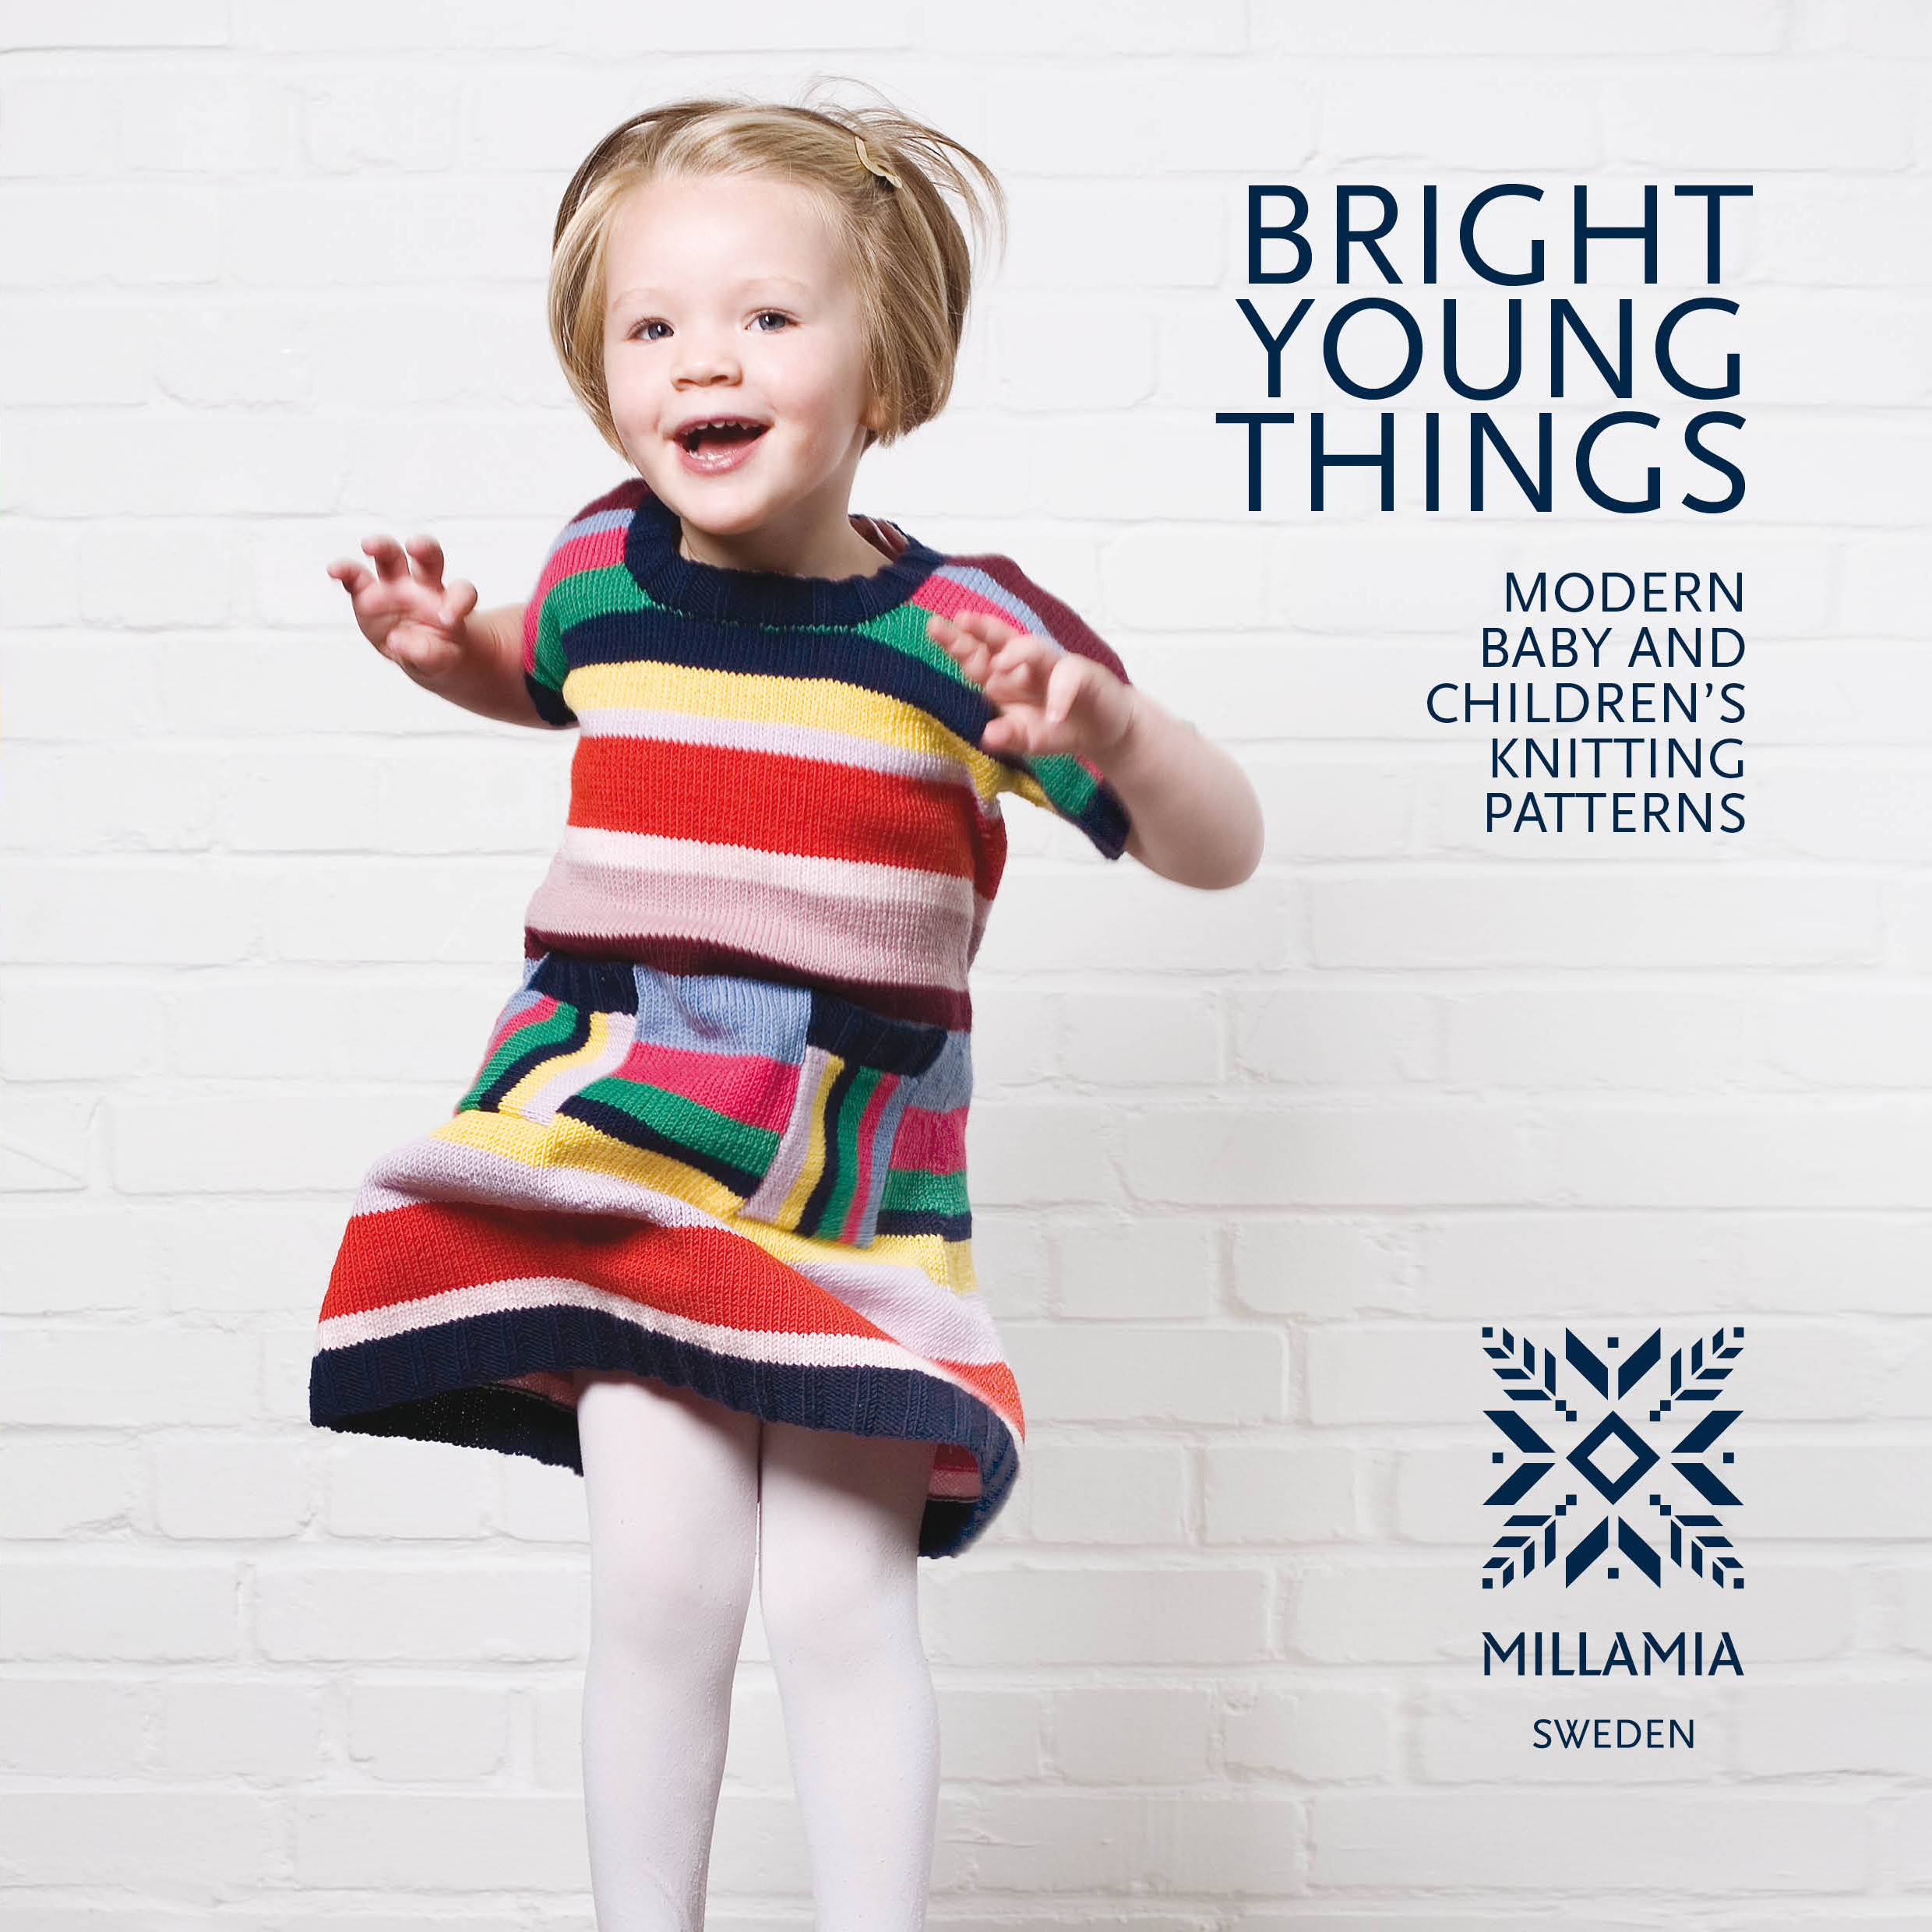 Knitting Patterns For Young Knitters : Bright Young Things   Modern Baby and Childrens Knitting ...